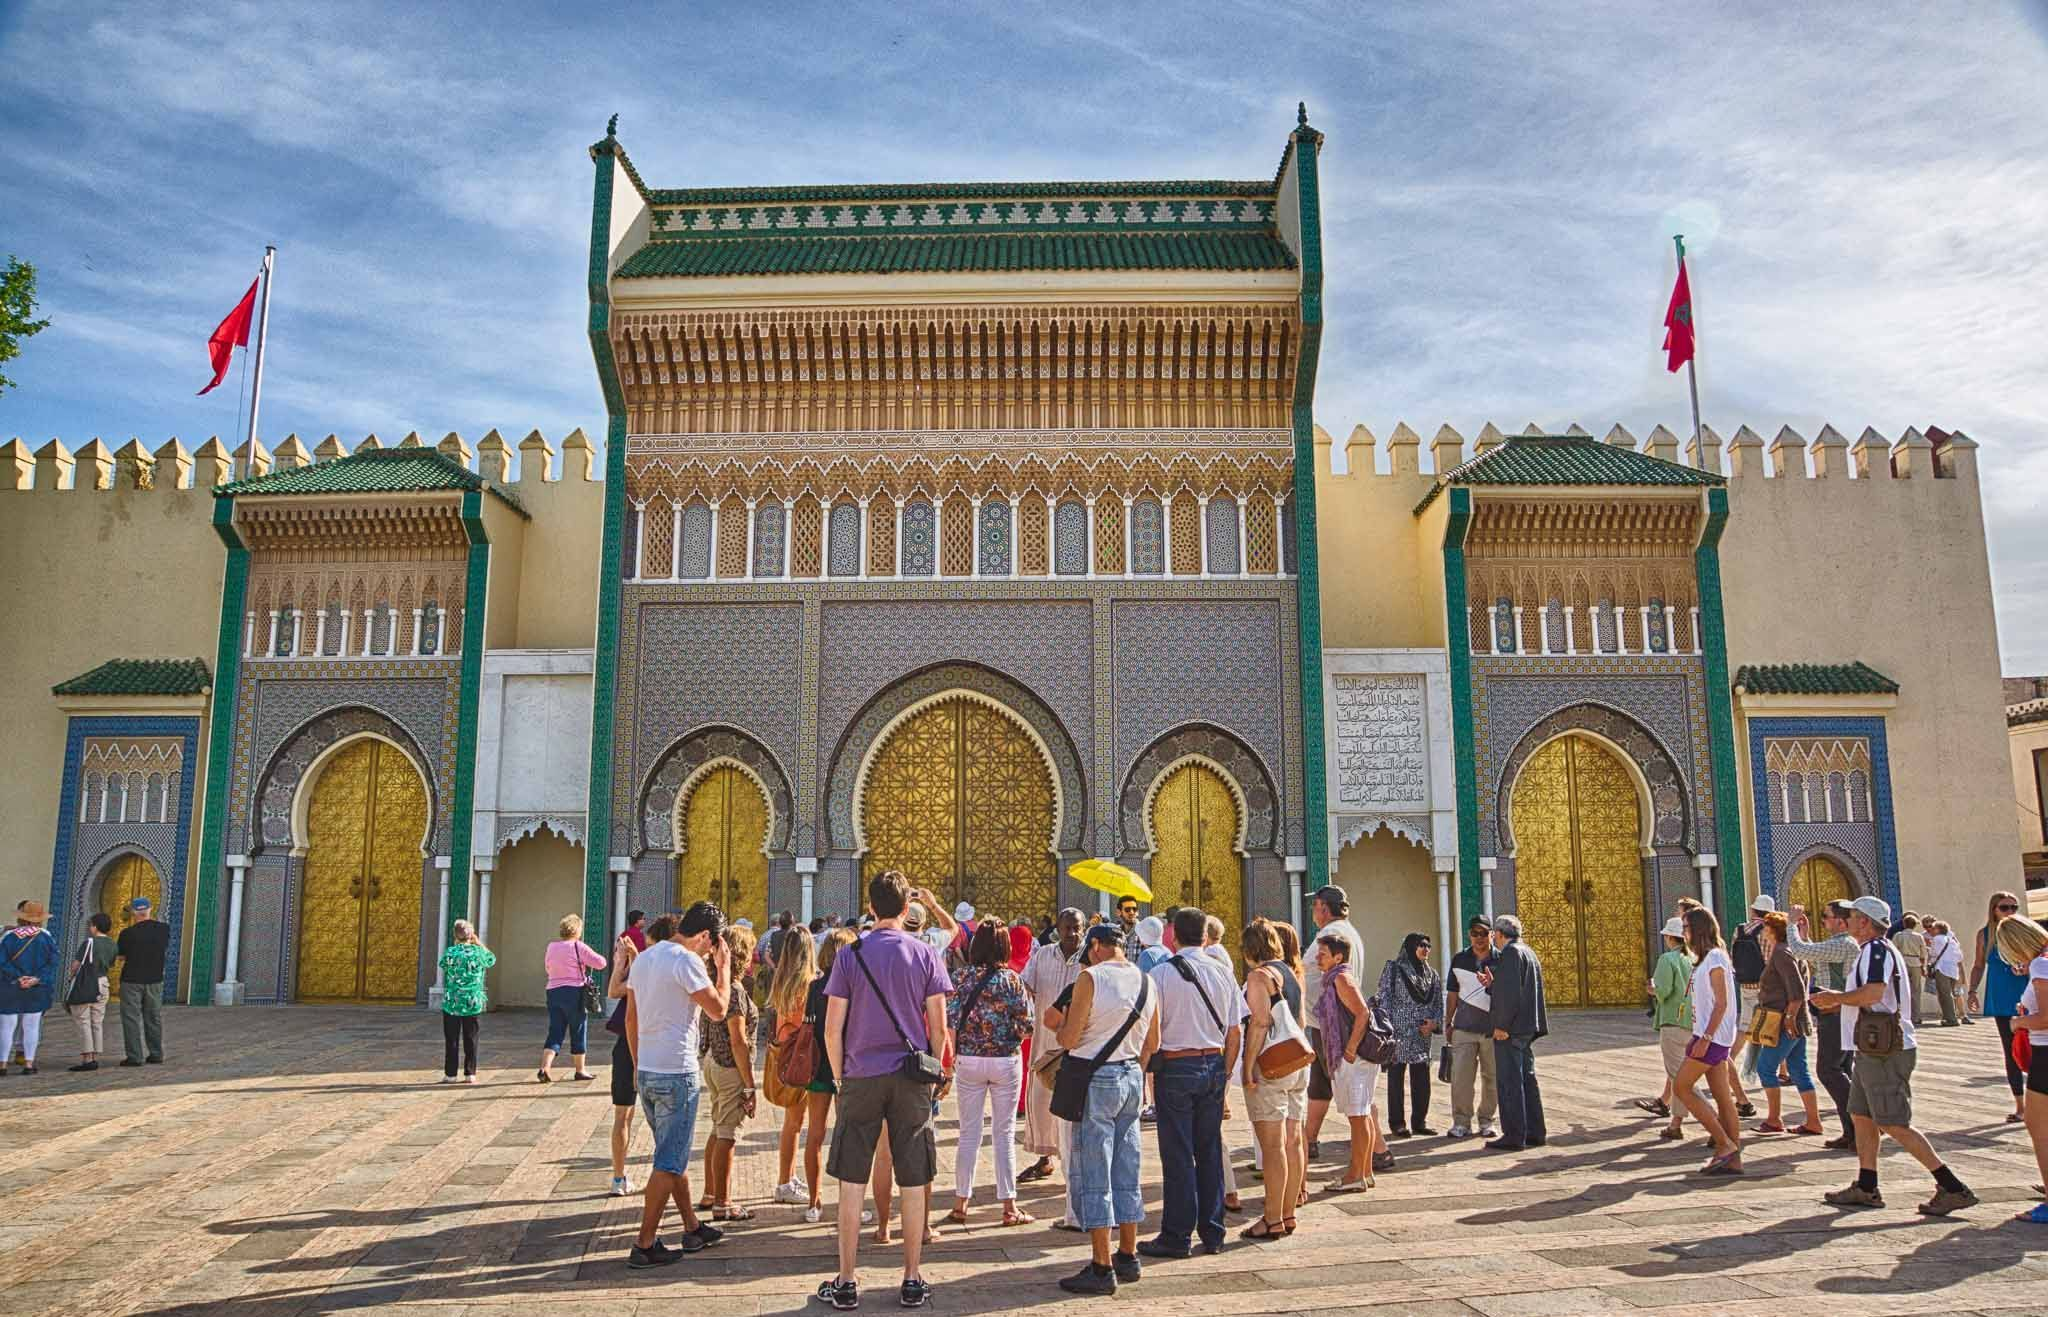 The Best Imperial Cities Tours